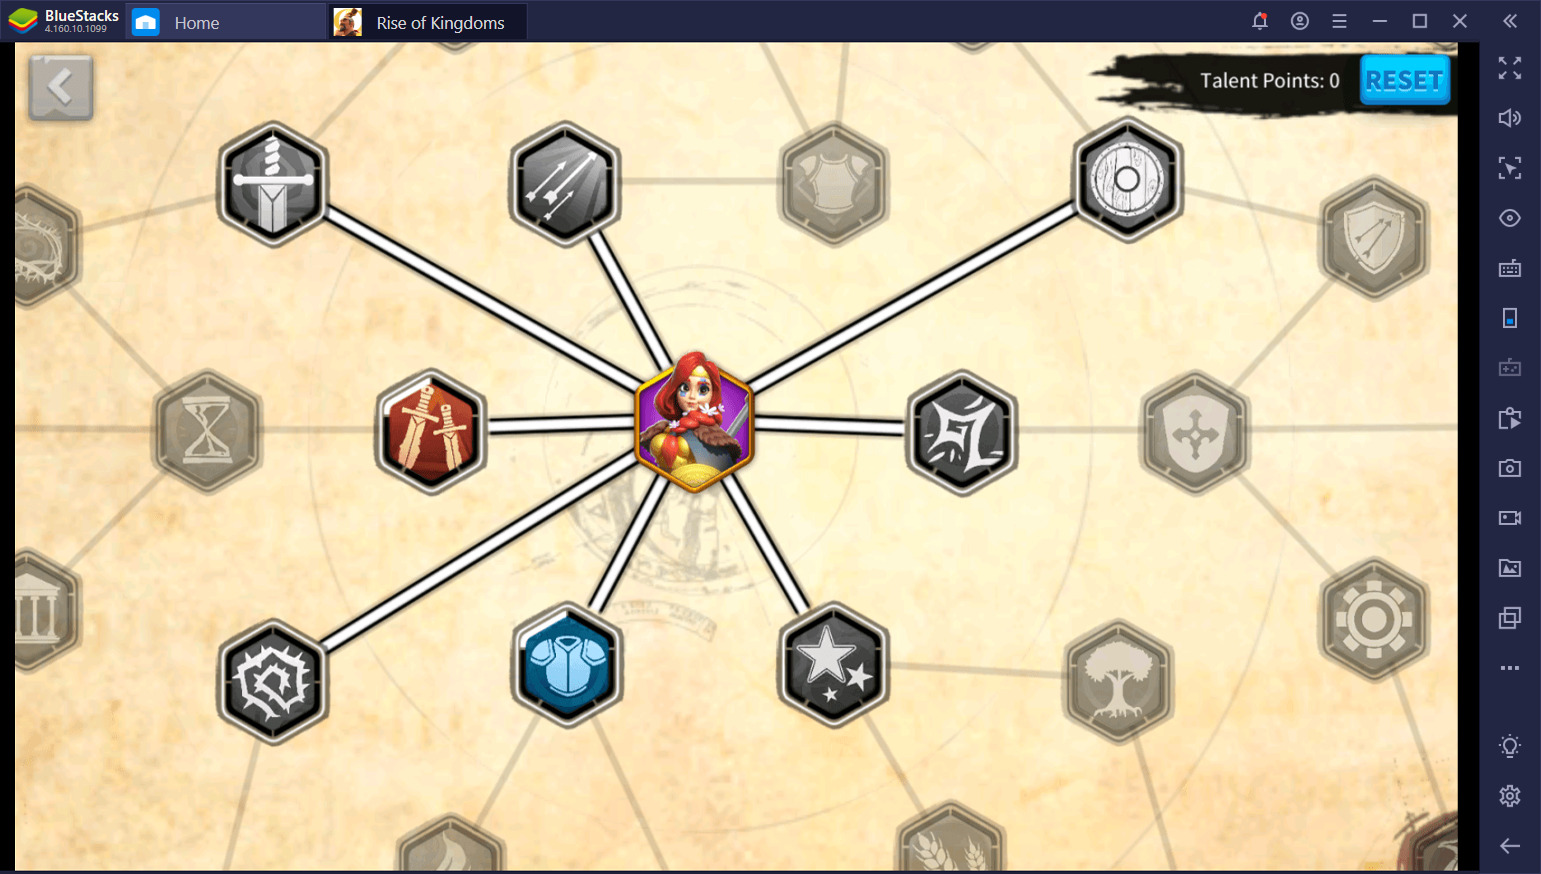 A Beginner's Know-all Guide to Rise of Kingdoms on PC